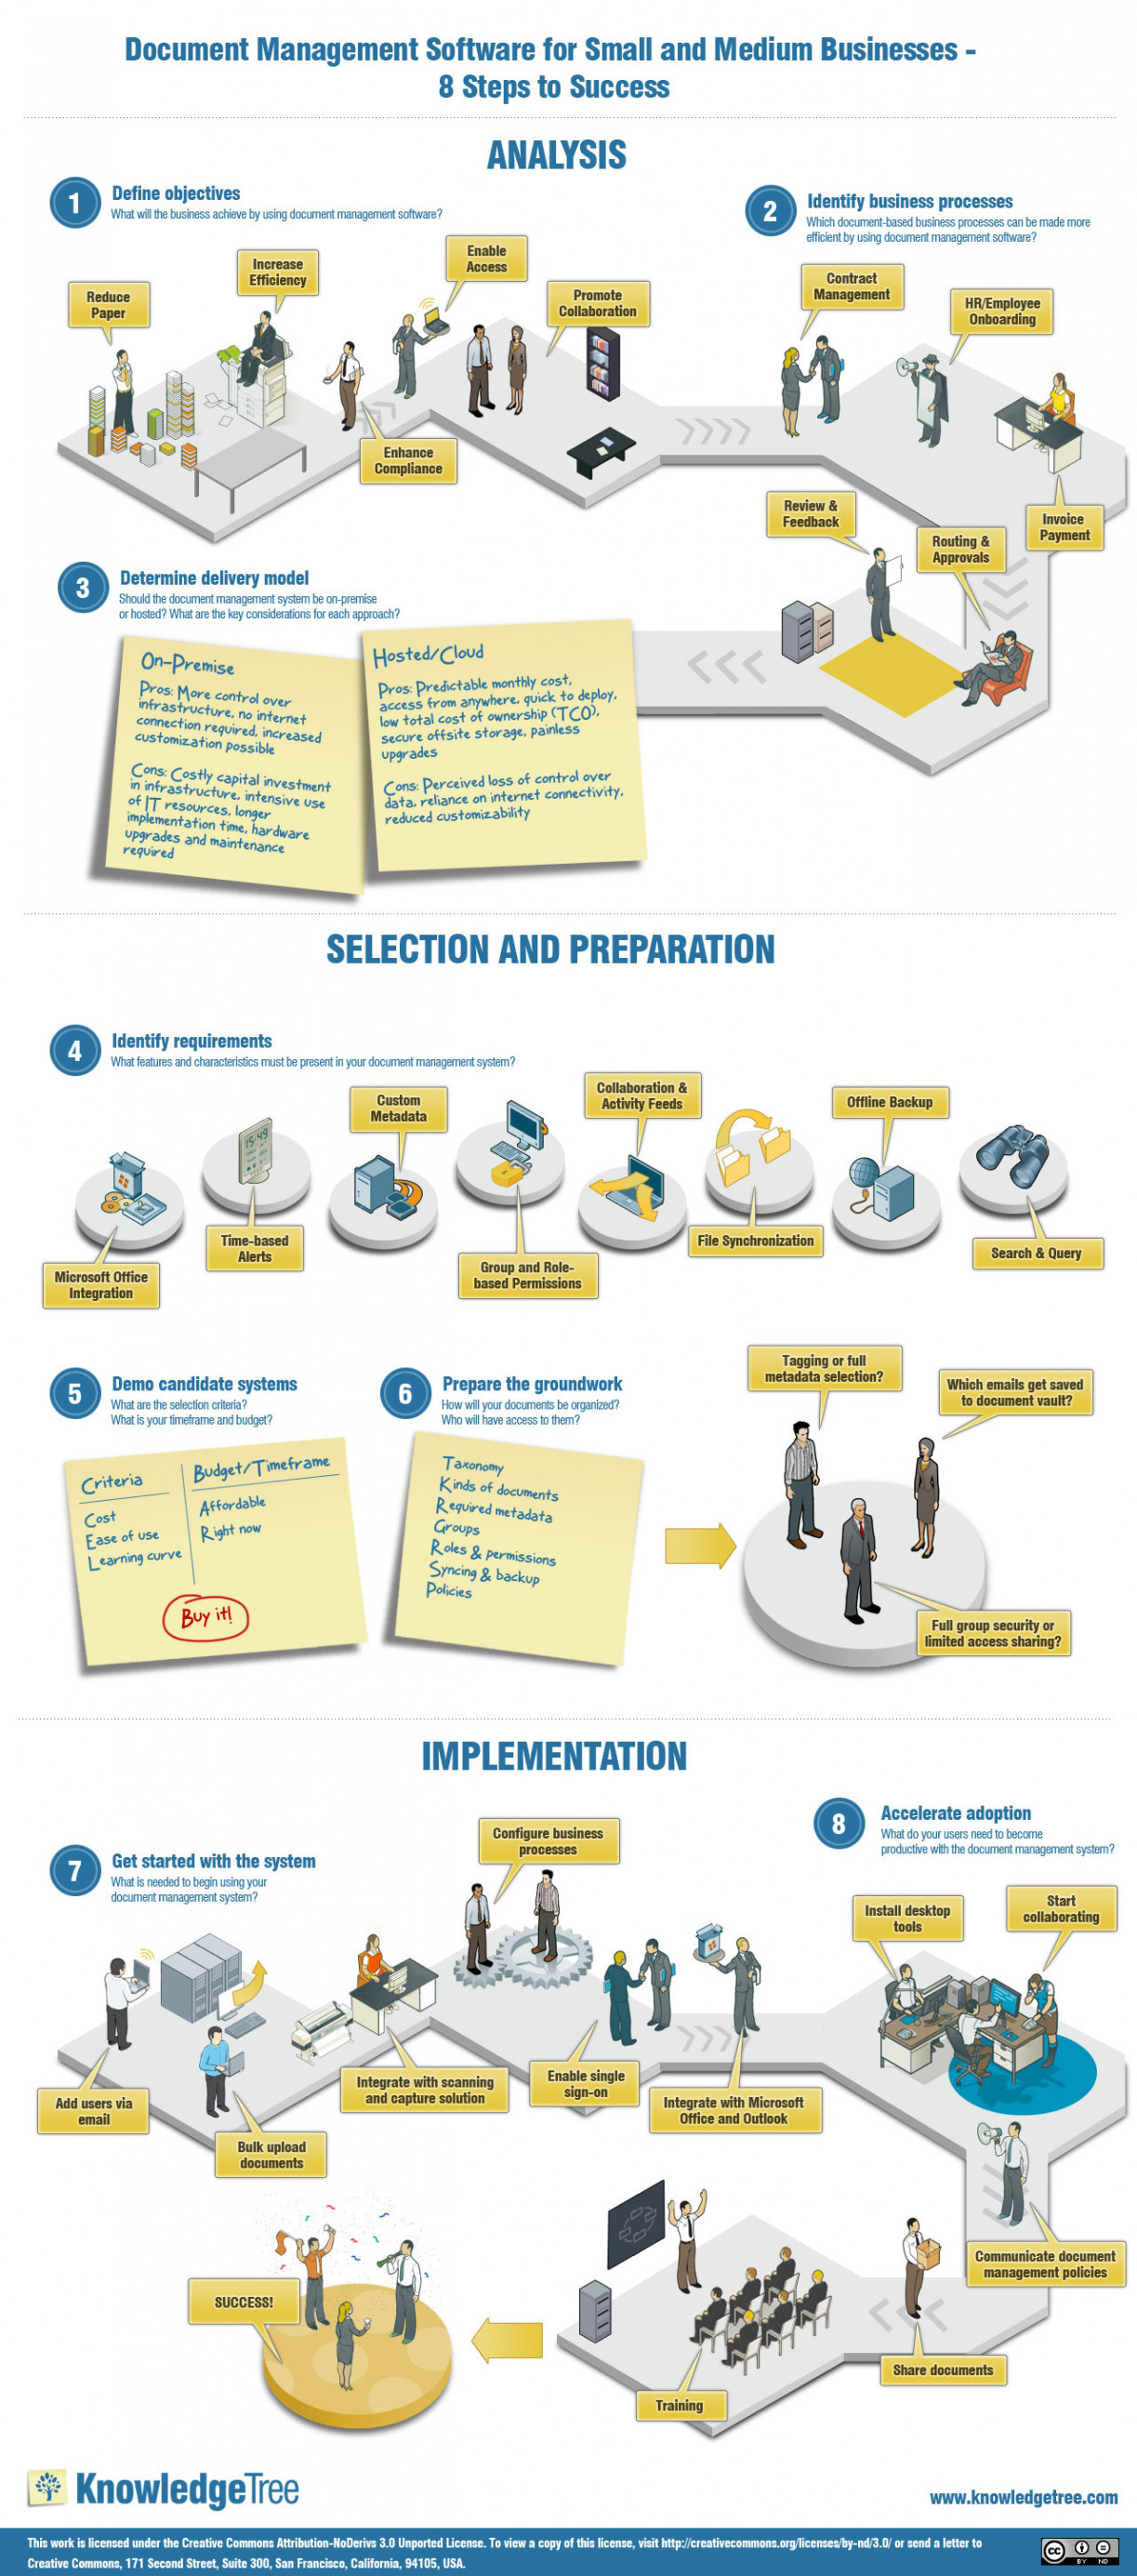 Document Management Software for Small and Medium Businesses - 8 Steps to Success Infographic